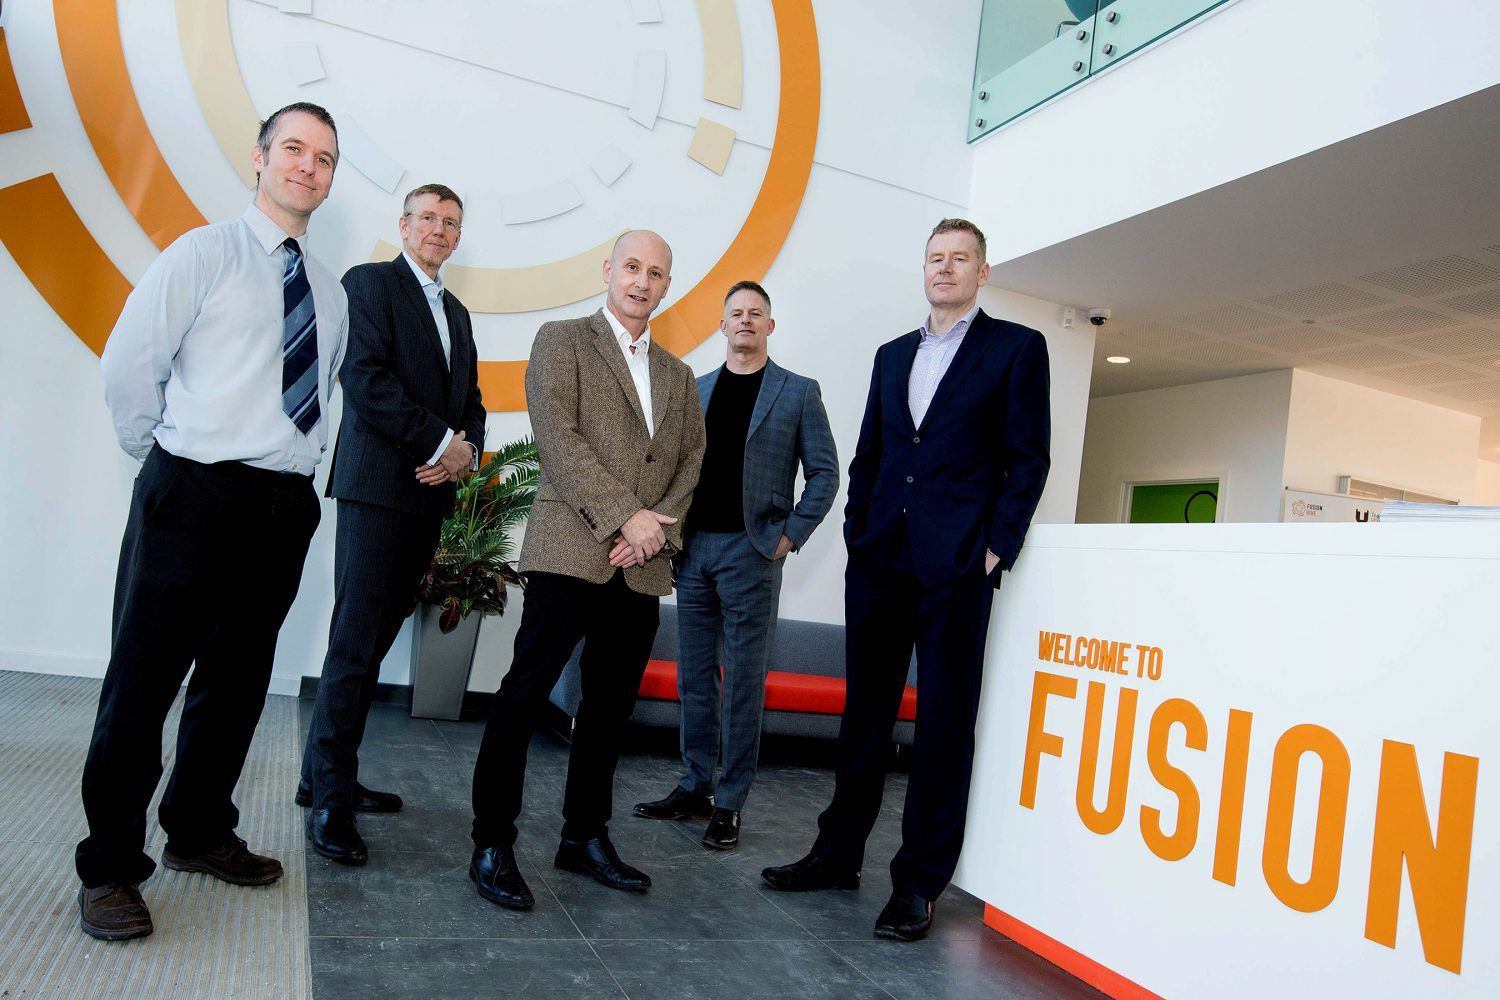 Five men standing, man to far right wearing a black suit is standing against a reception desk with Welcome to Fusion signage on it.